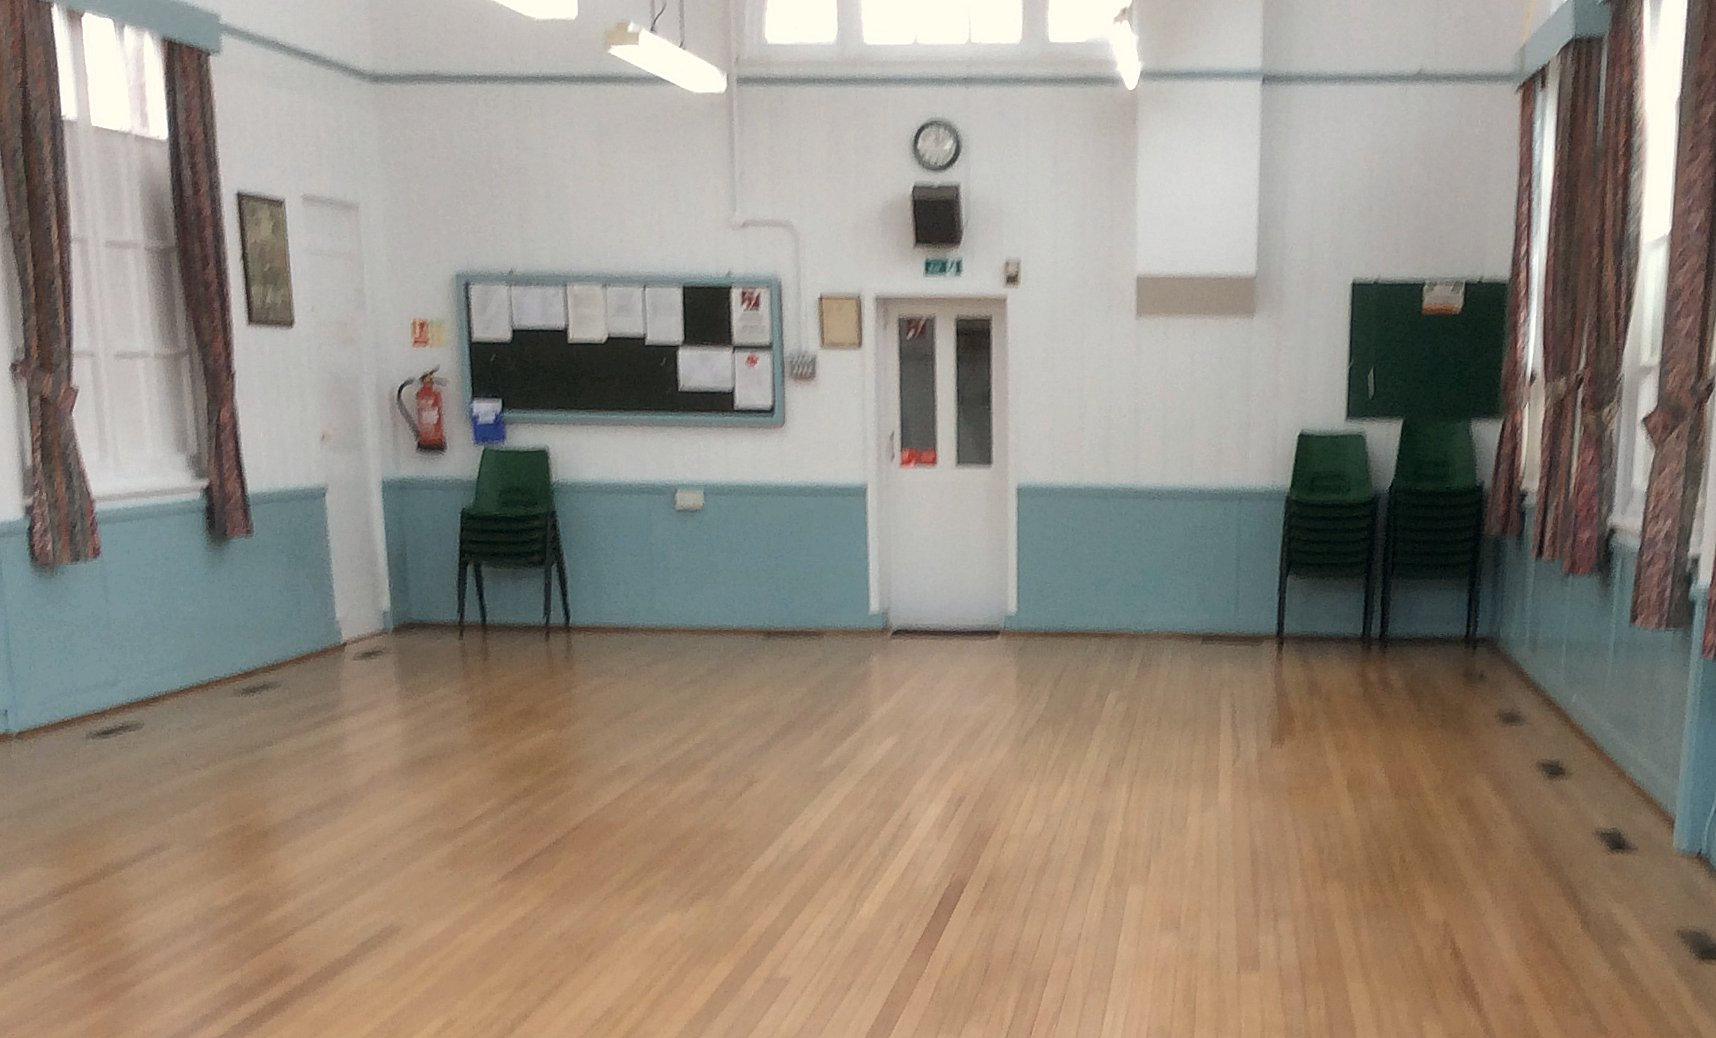 Click on the image above to view more photos of Avenue Hall.   Avenue Hall was extensively refurbished in 2015 with help from the Big Lottery Fund.